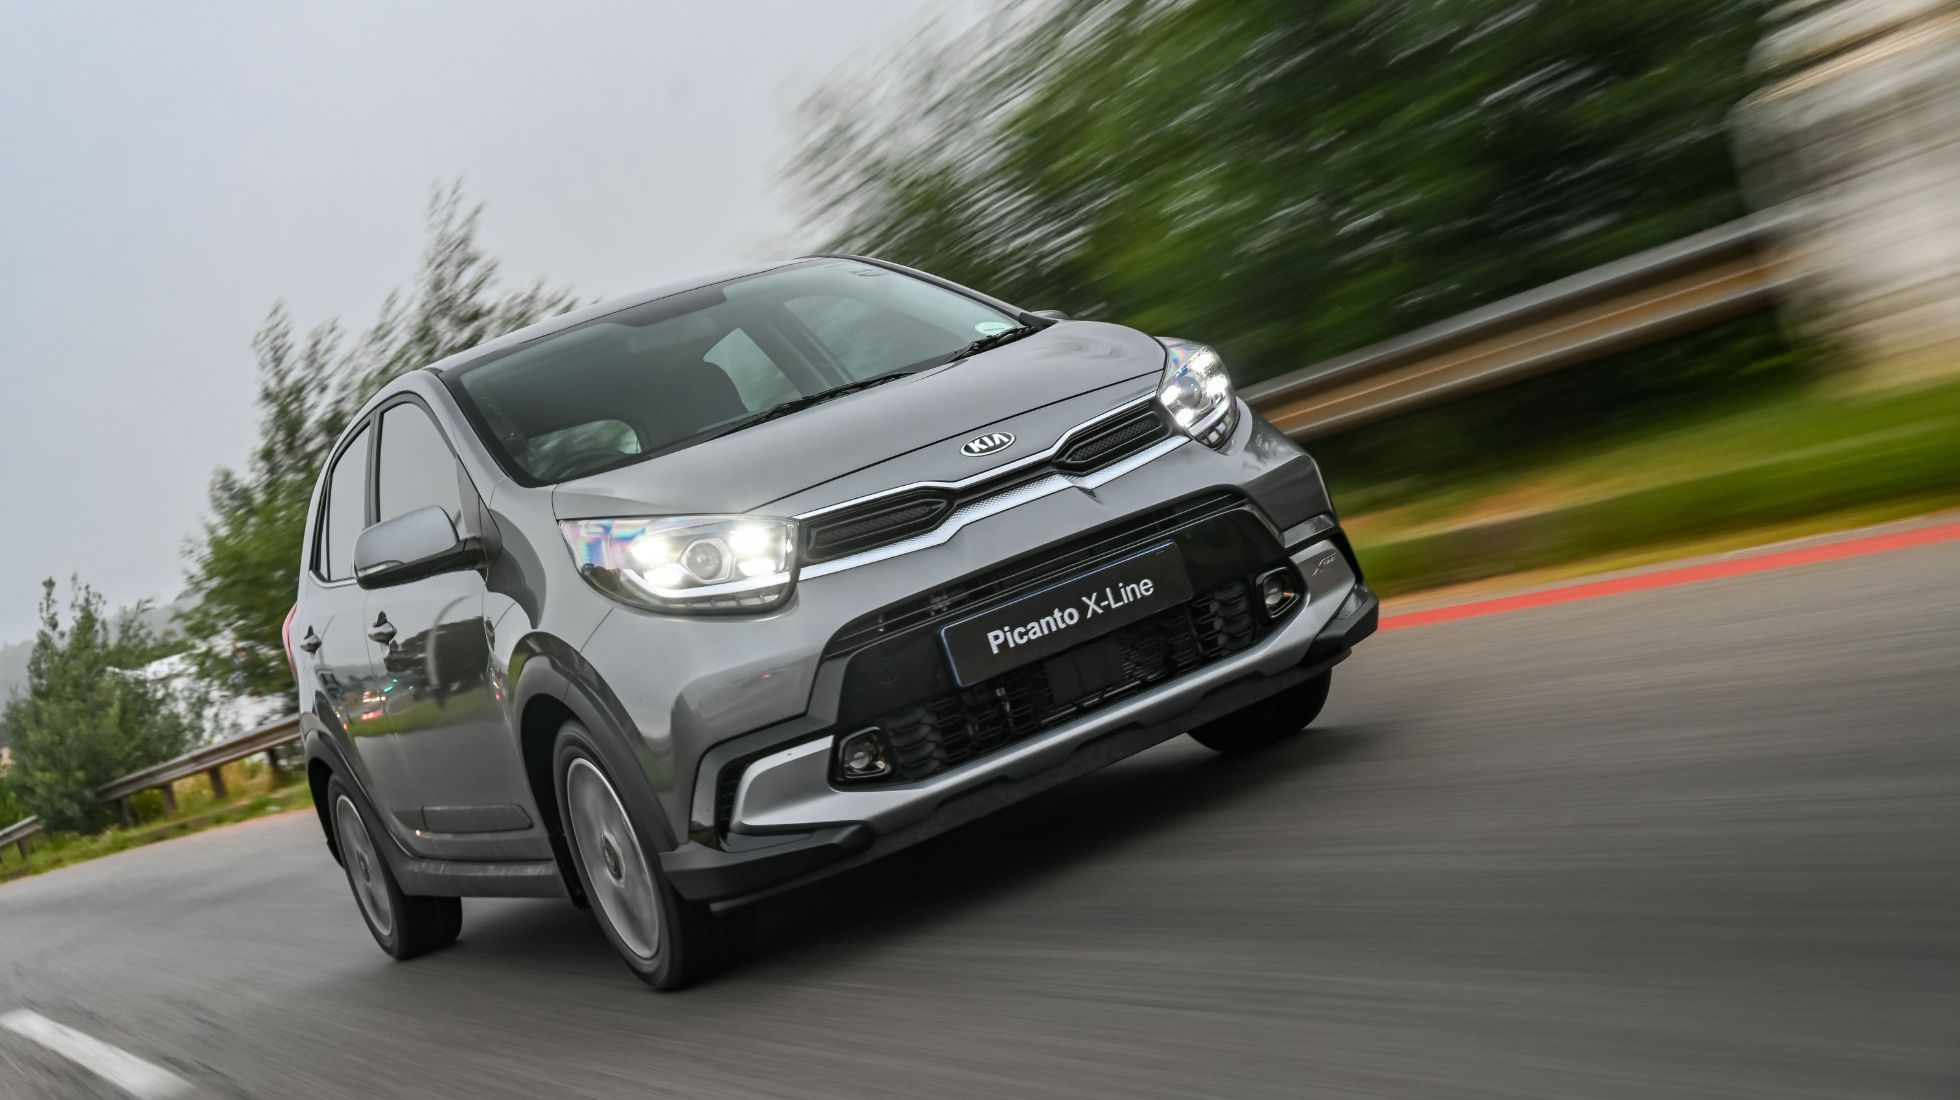 FIRST DRIVE: KIA's Picanto X-Line has crossover ambitions